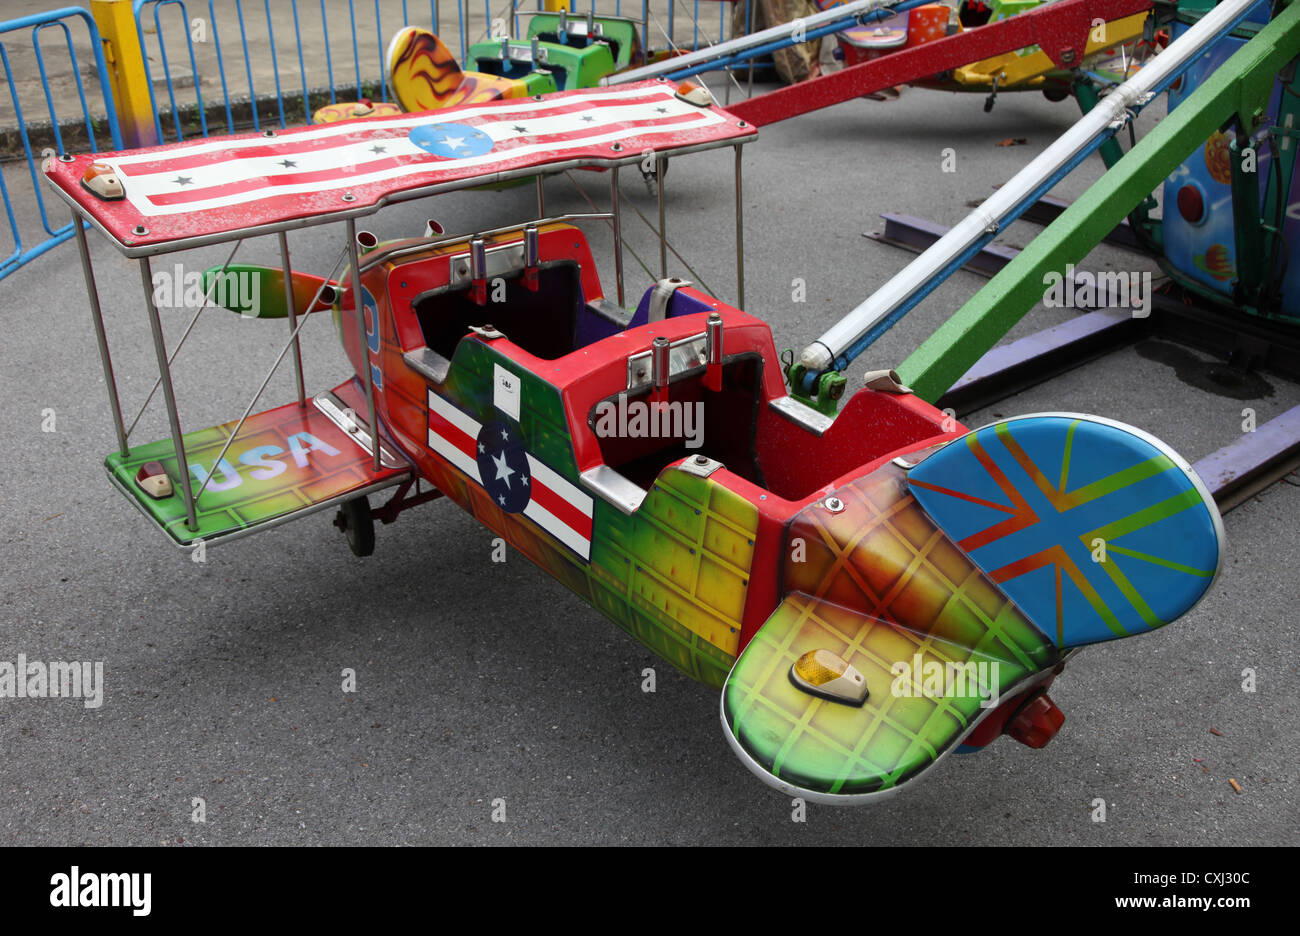 its a photo of toy planes in an entertainment park they are colorful small airplane for kids to play in old style look